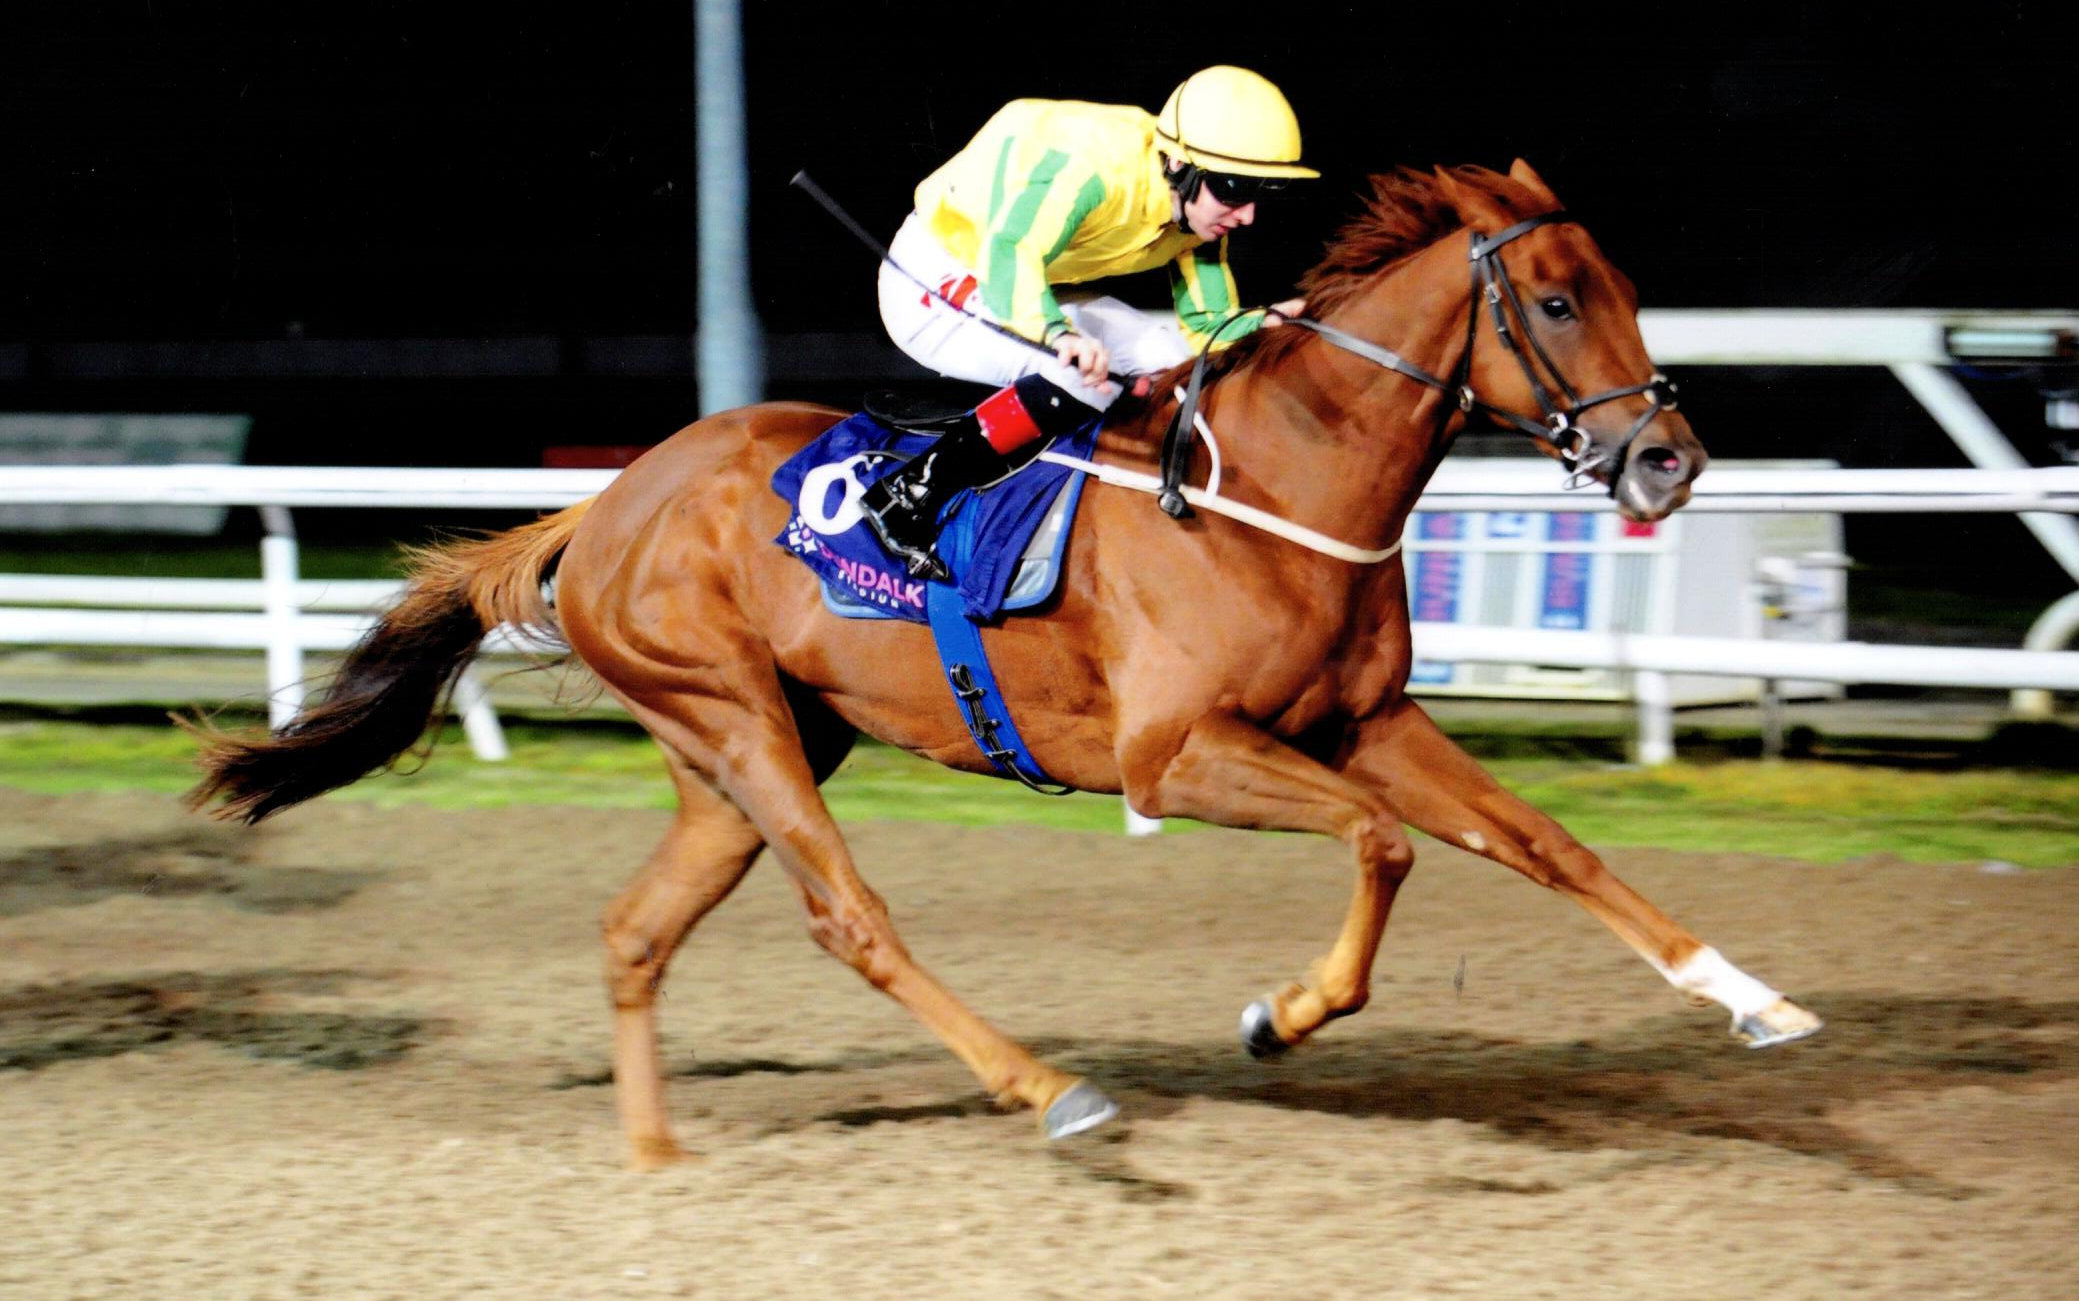 KAFU is a comfortable winner over a mile at Dundalk, 30th October 2019